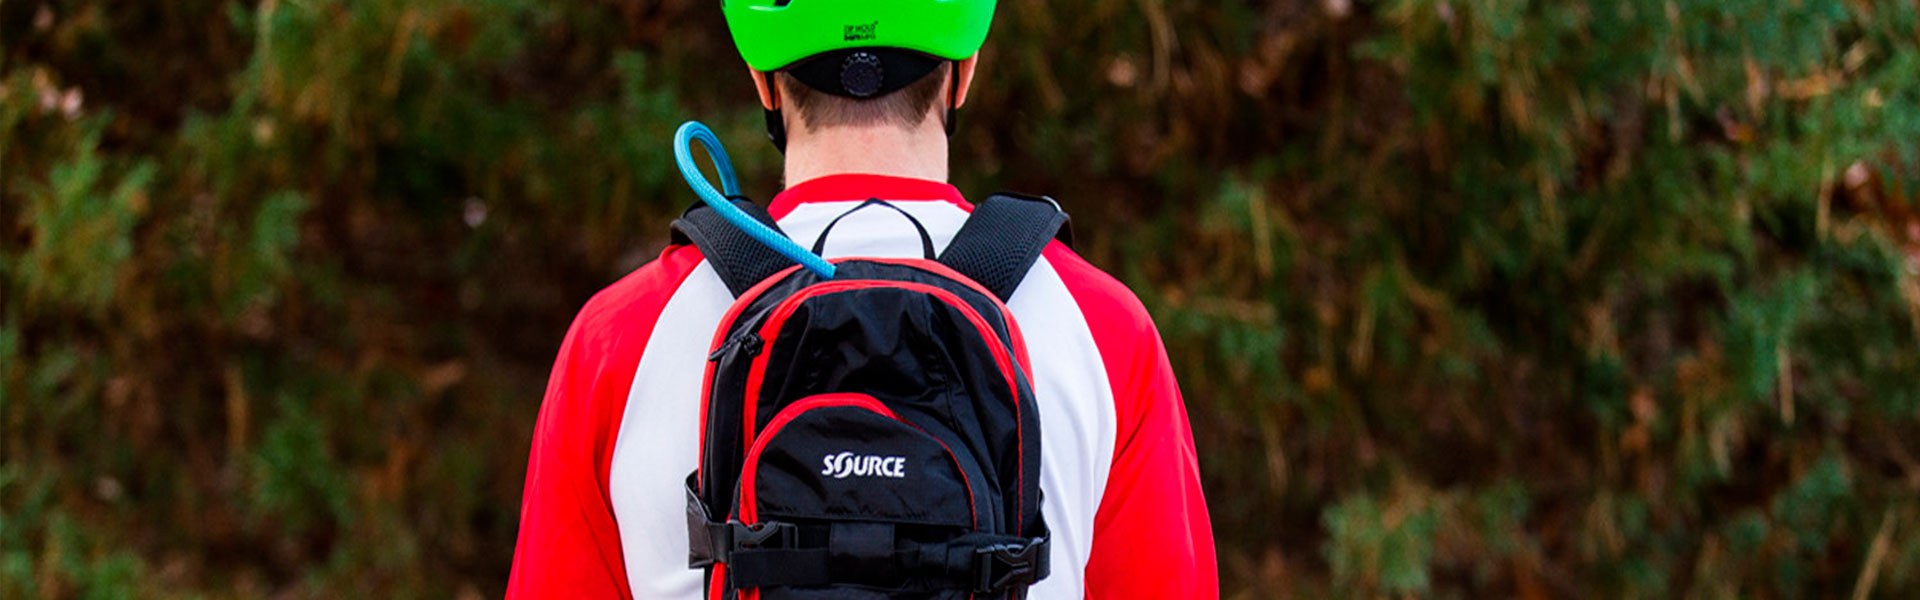 source whistler 20 liter hydration pack